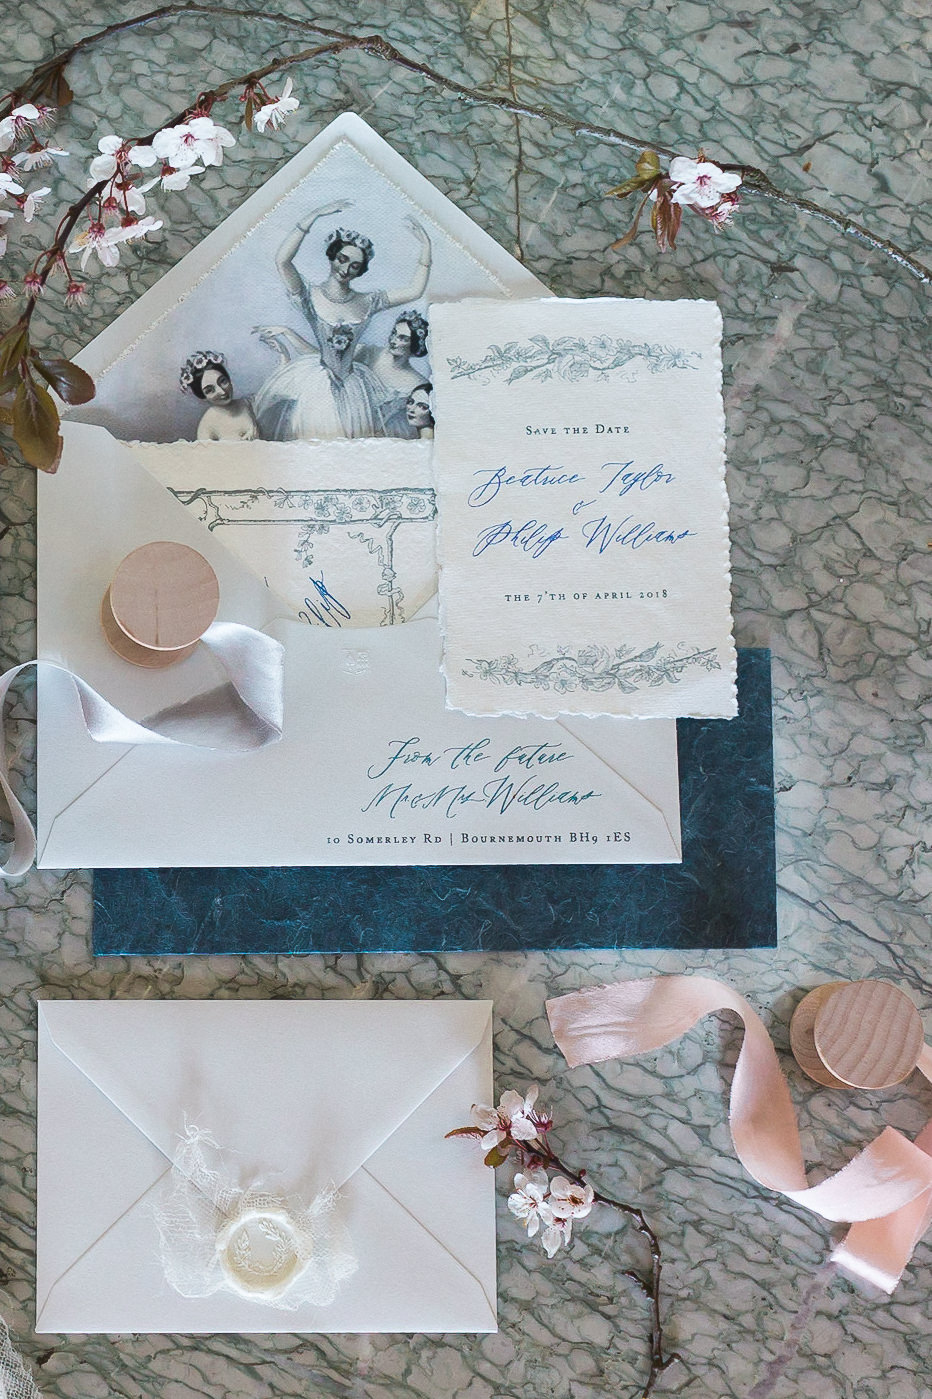 Modern Dance Ballet Dance Inspired Editorial Fine Art Stationery Dusty Blue Cherry Blossoms White Wax Seal Marble | Romantic Soft Wedding Ideas Siobhan H Photography